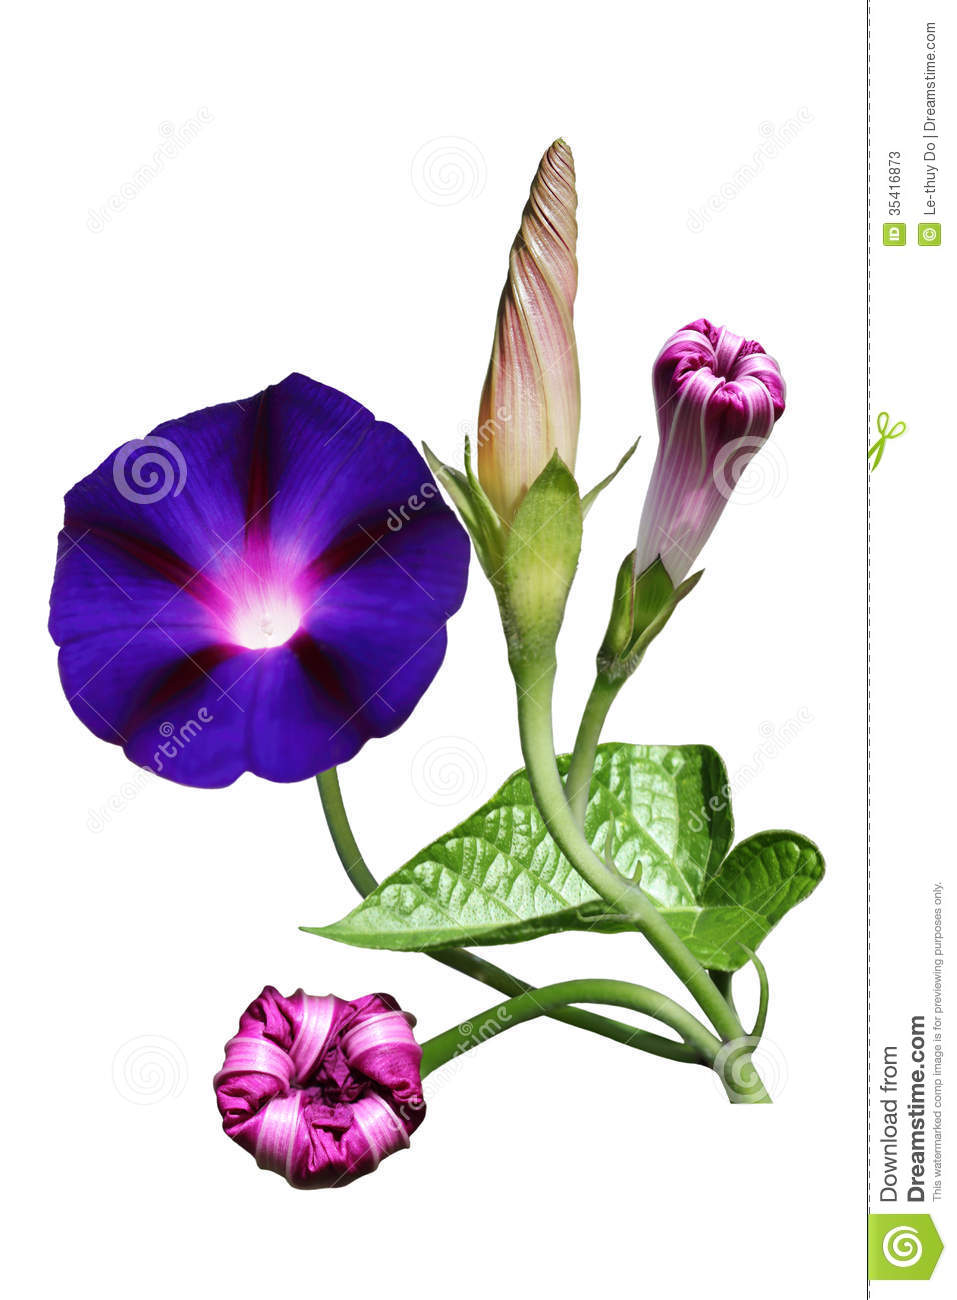 Morning Glory Flower Stock Image Image Of Floral Glory 35416873